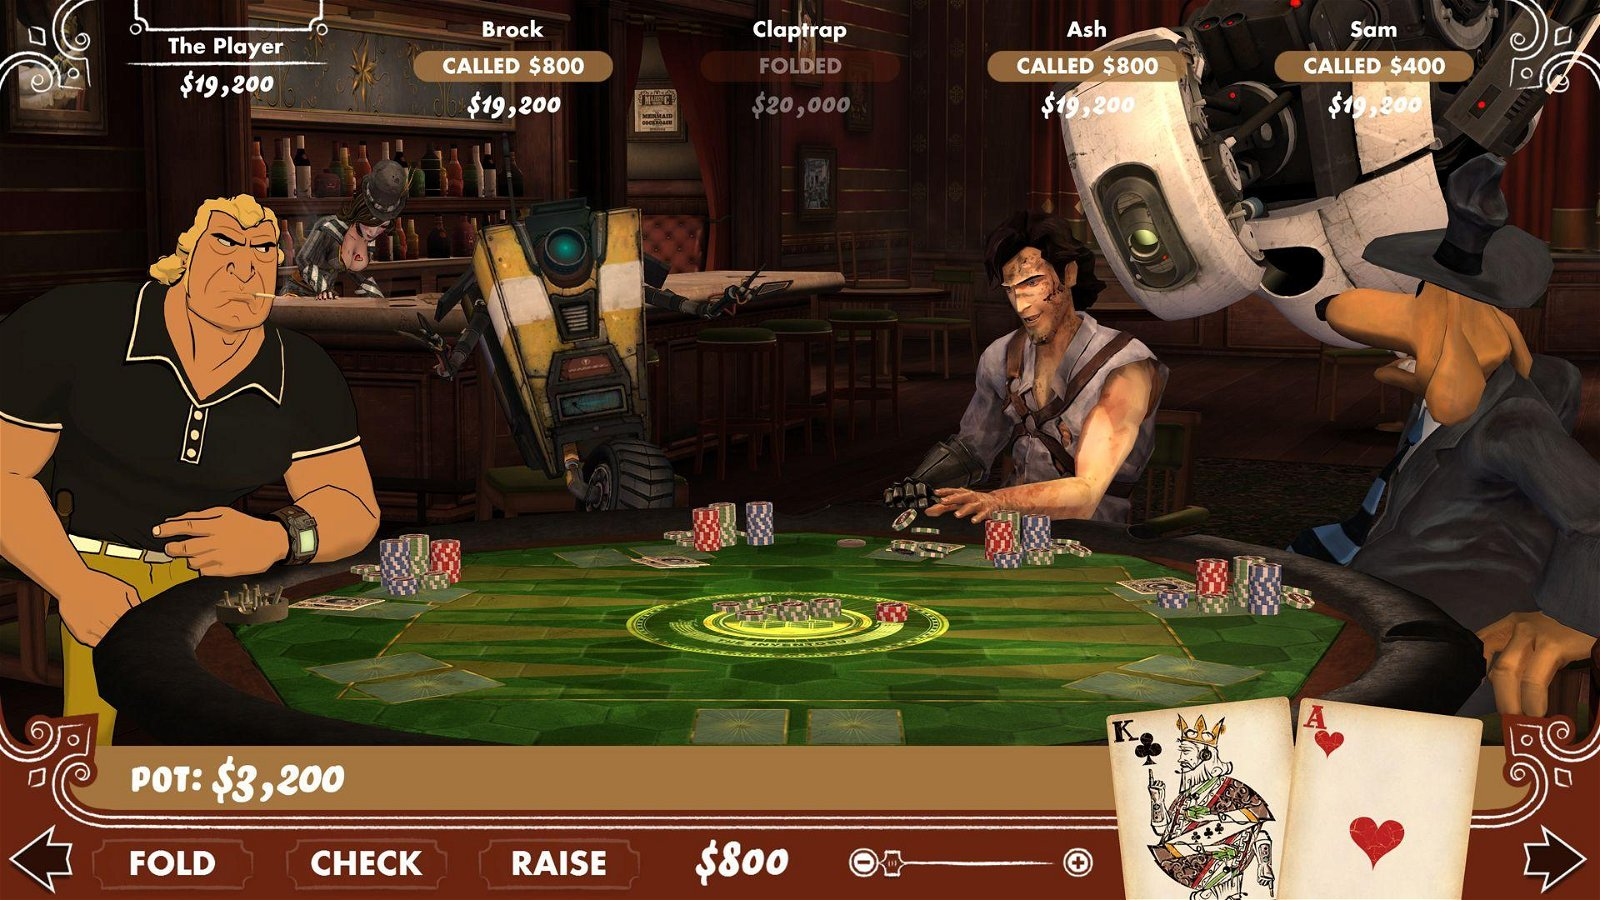 Poker-Night-2-Gets-Screenshots-Has-Rewards-for-Borderlands-2-Team-Fortress-2-More-3.jpg